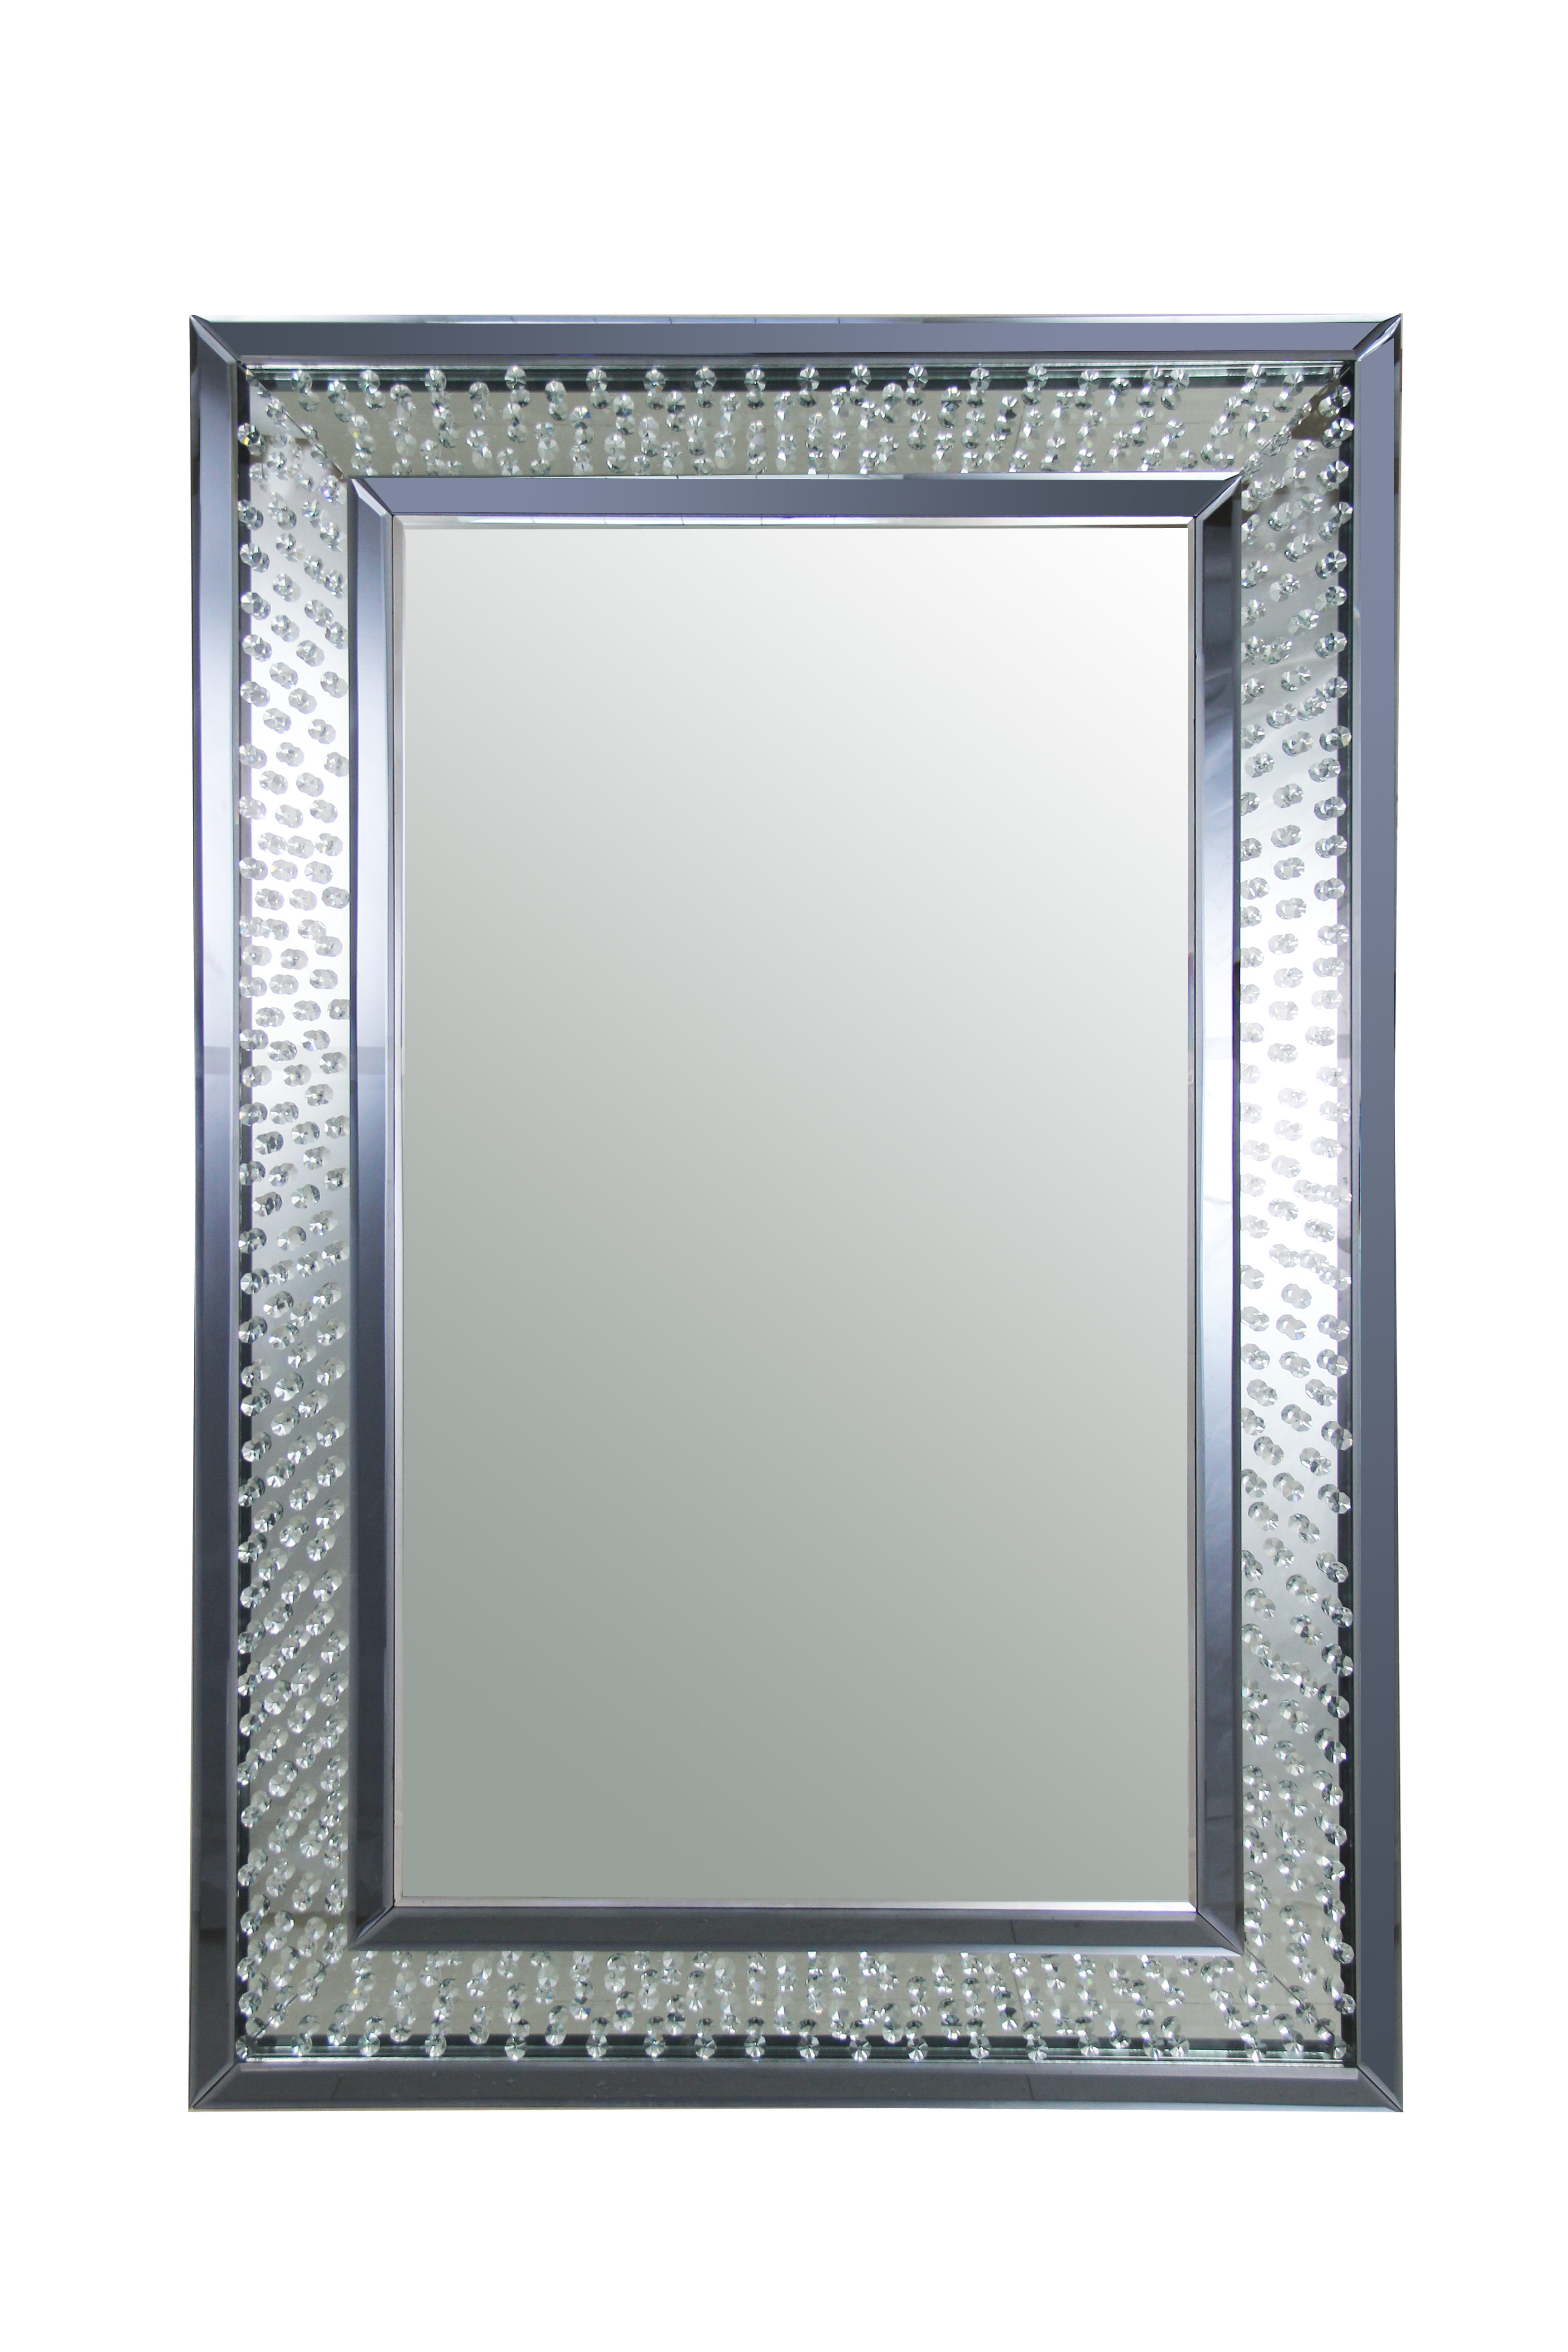 Acme Furniture Nysa Accent Wall Mirror Inside Accent Wall Mirrors (Image 3 of 20)